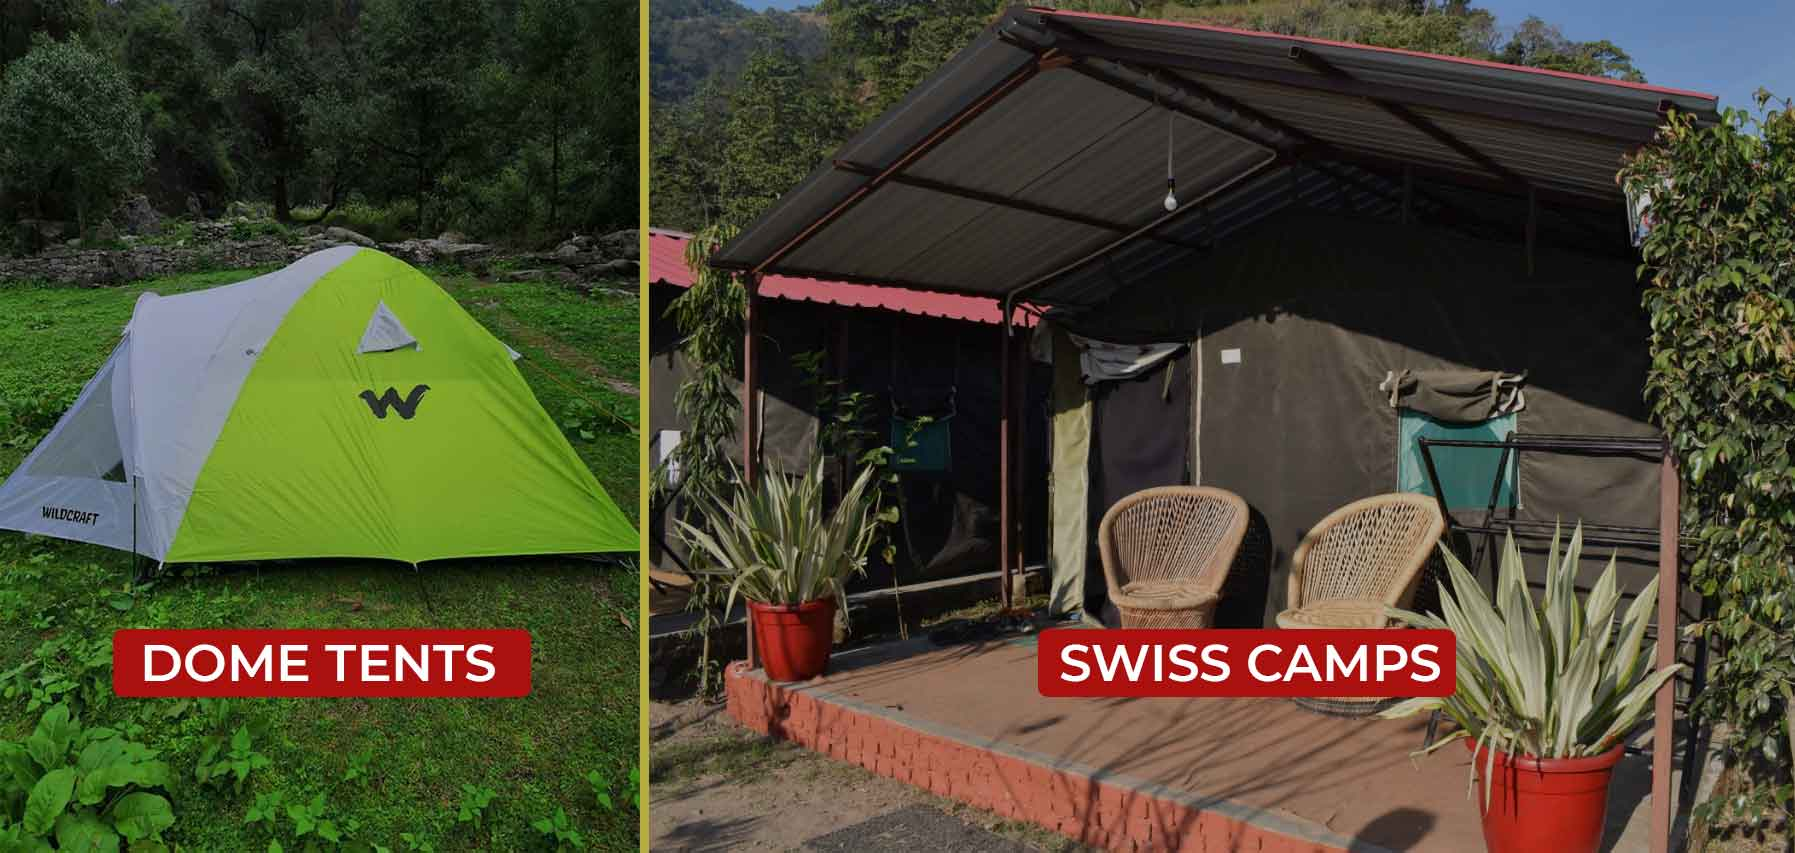 the left side of the photo shows a dome tent. The right side of the photo show a swiss camp with two bamboo chairs in front of it.